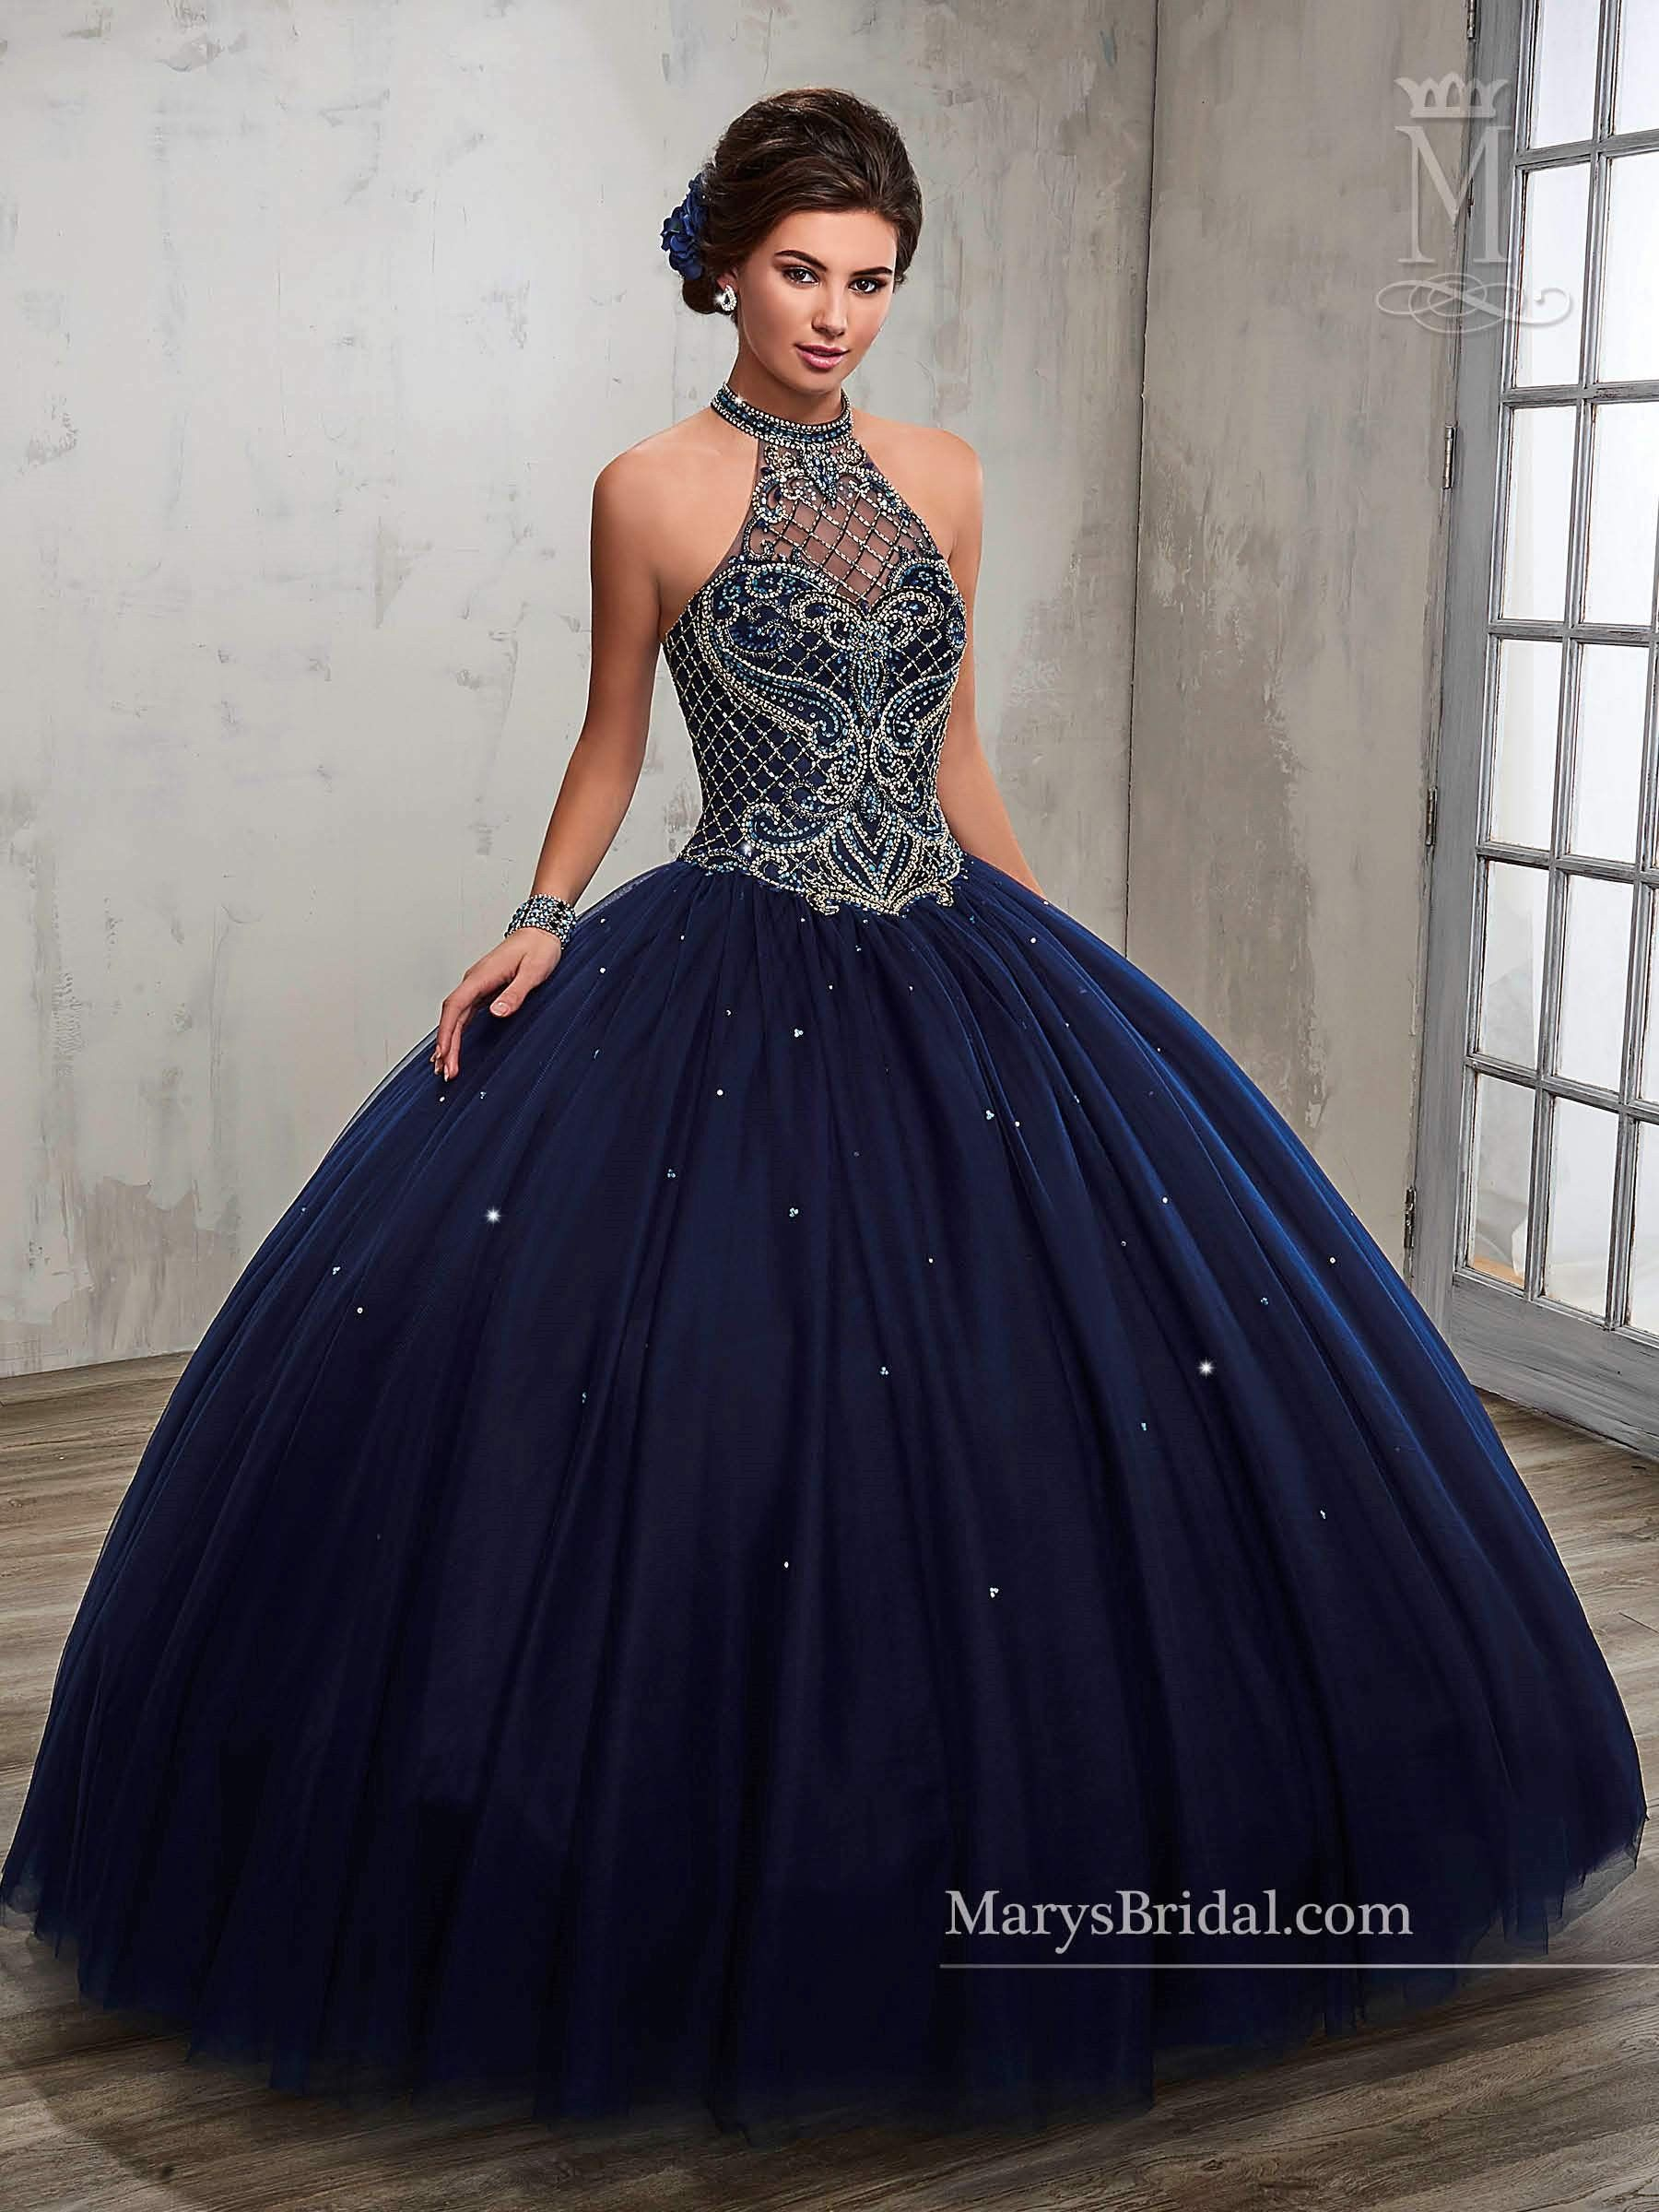 39fe2e3080b Beaded A-line Quinceanera Dress by Mary s Bridal Princess 4Q503 ...